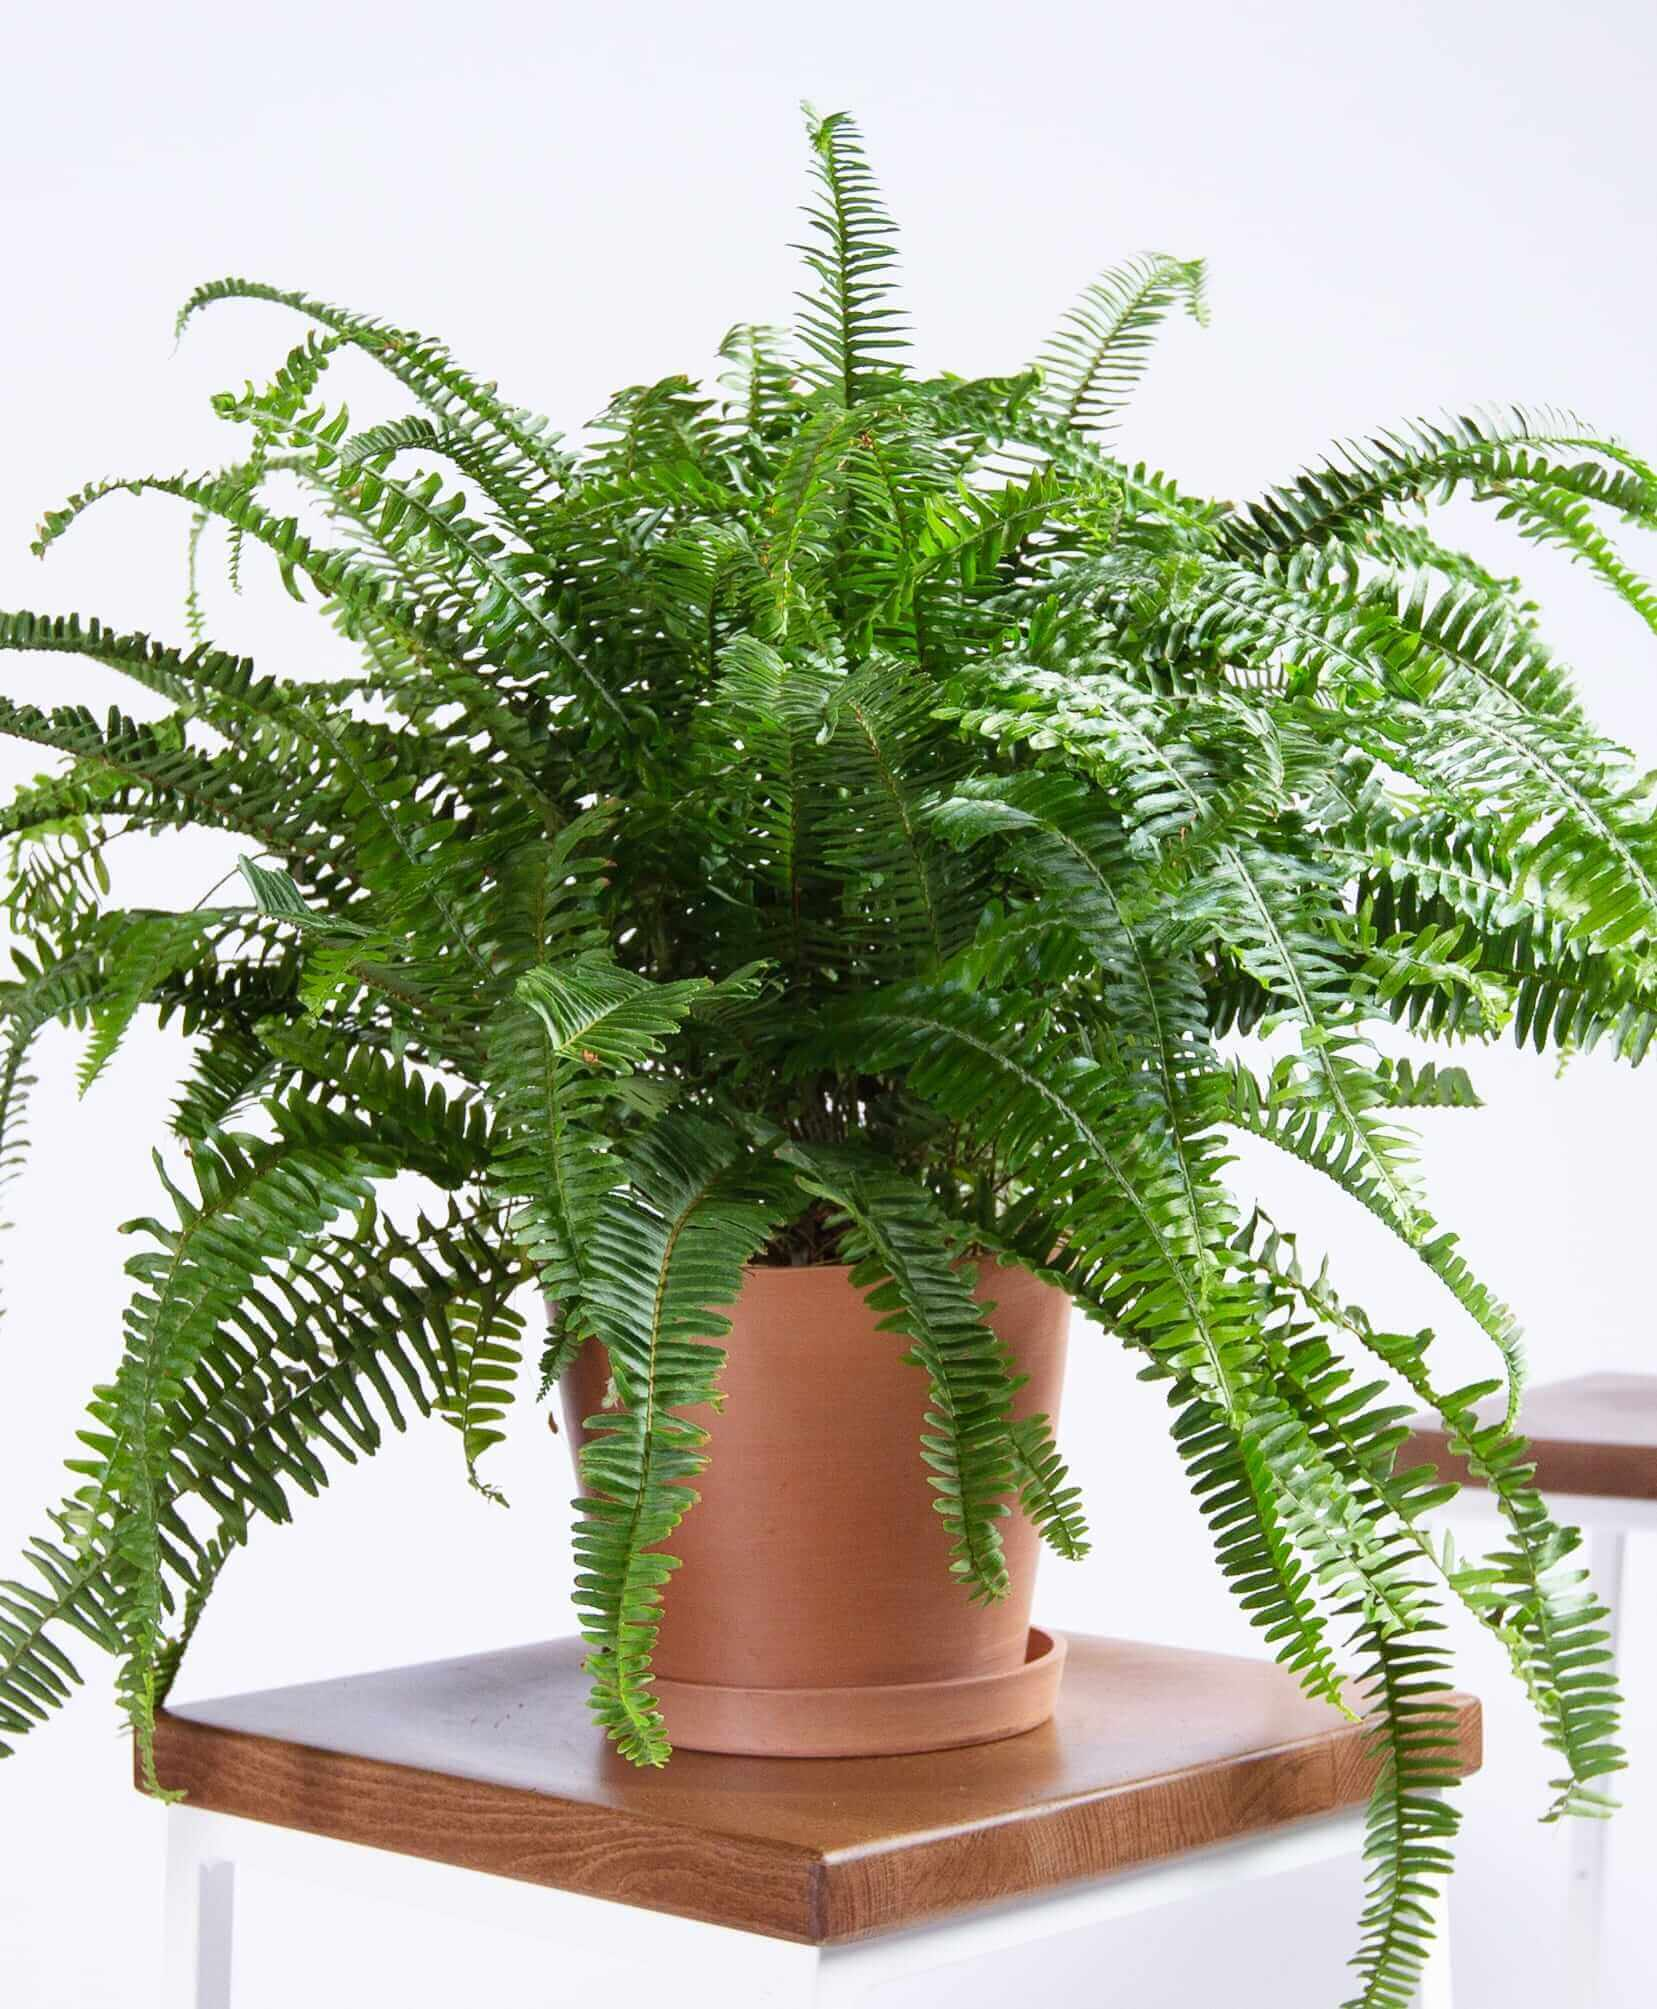 bloomscape_product-kimberly-queen-fern-clay-1